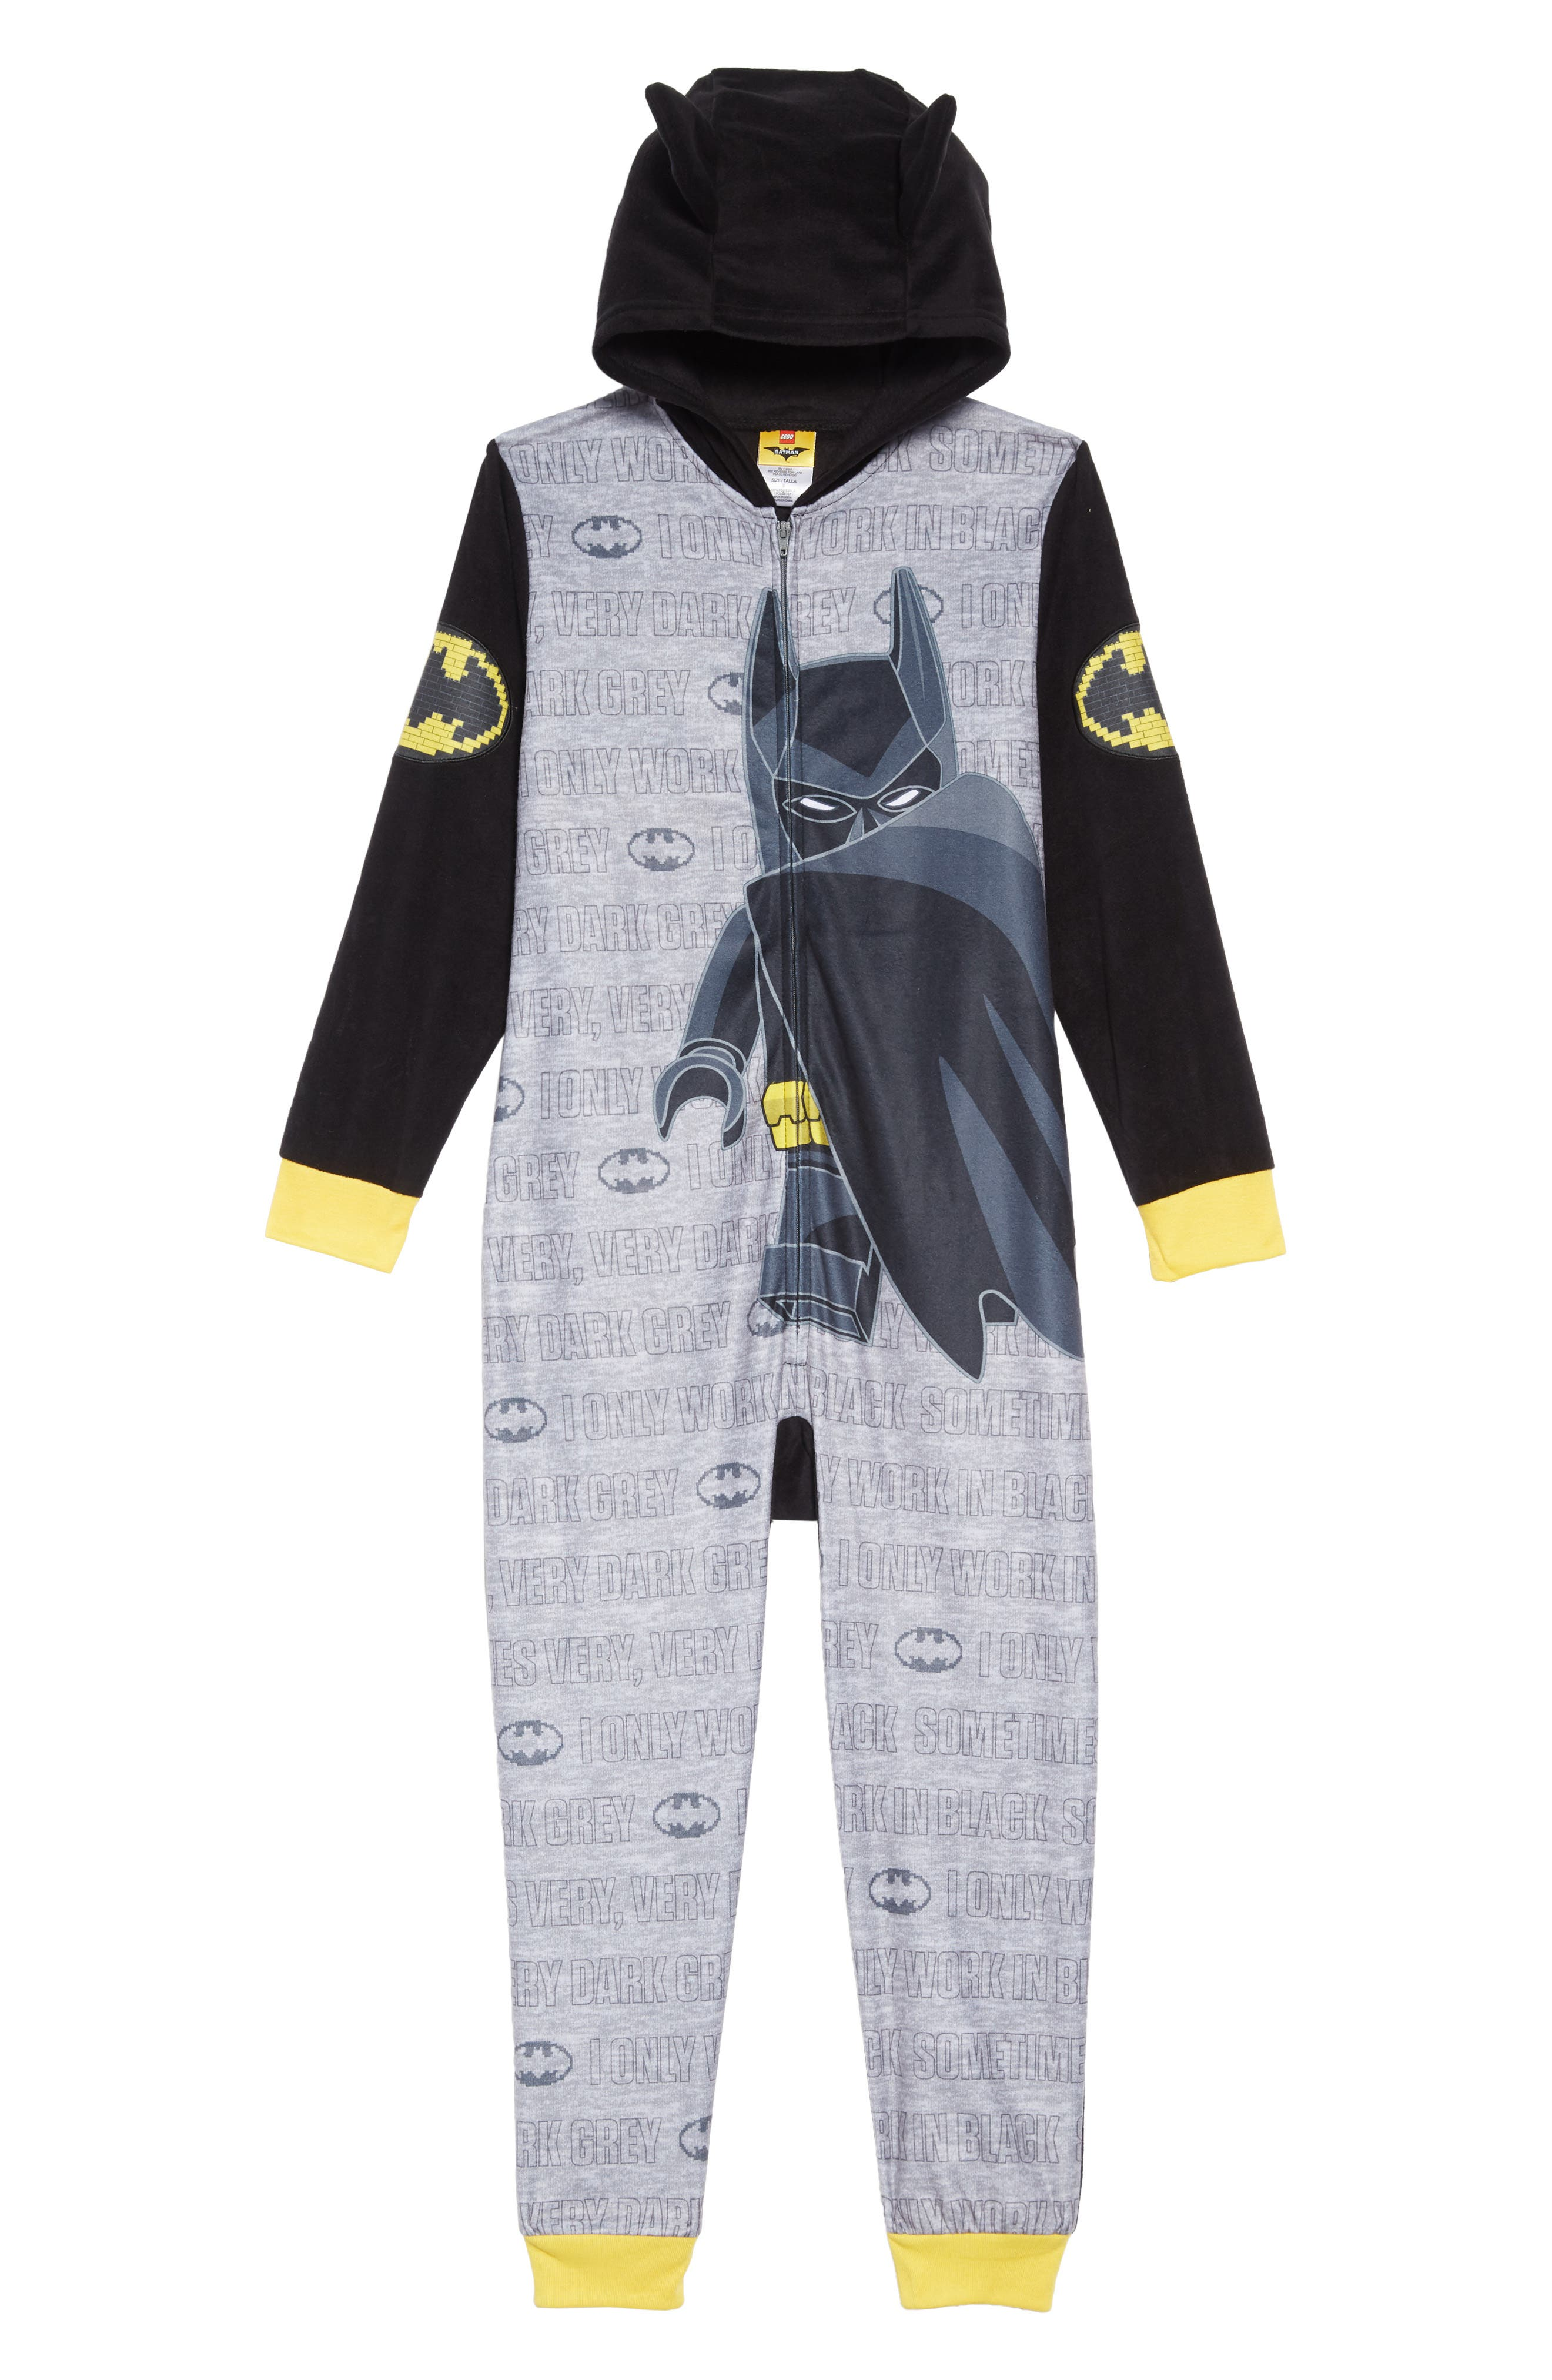 Boys Lego Batman Fitted OnePiece Hooded Pajamas